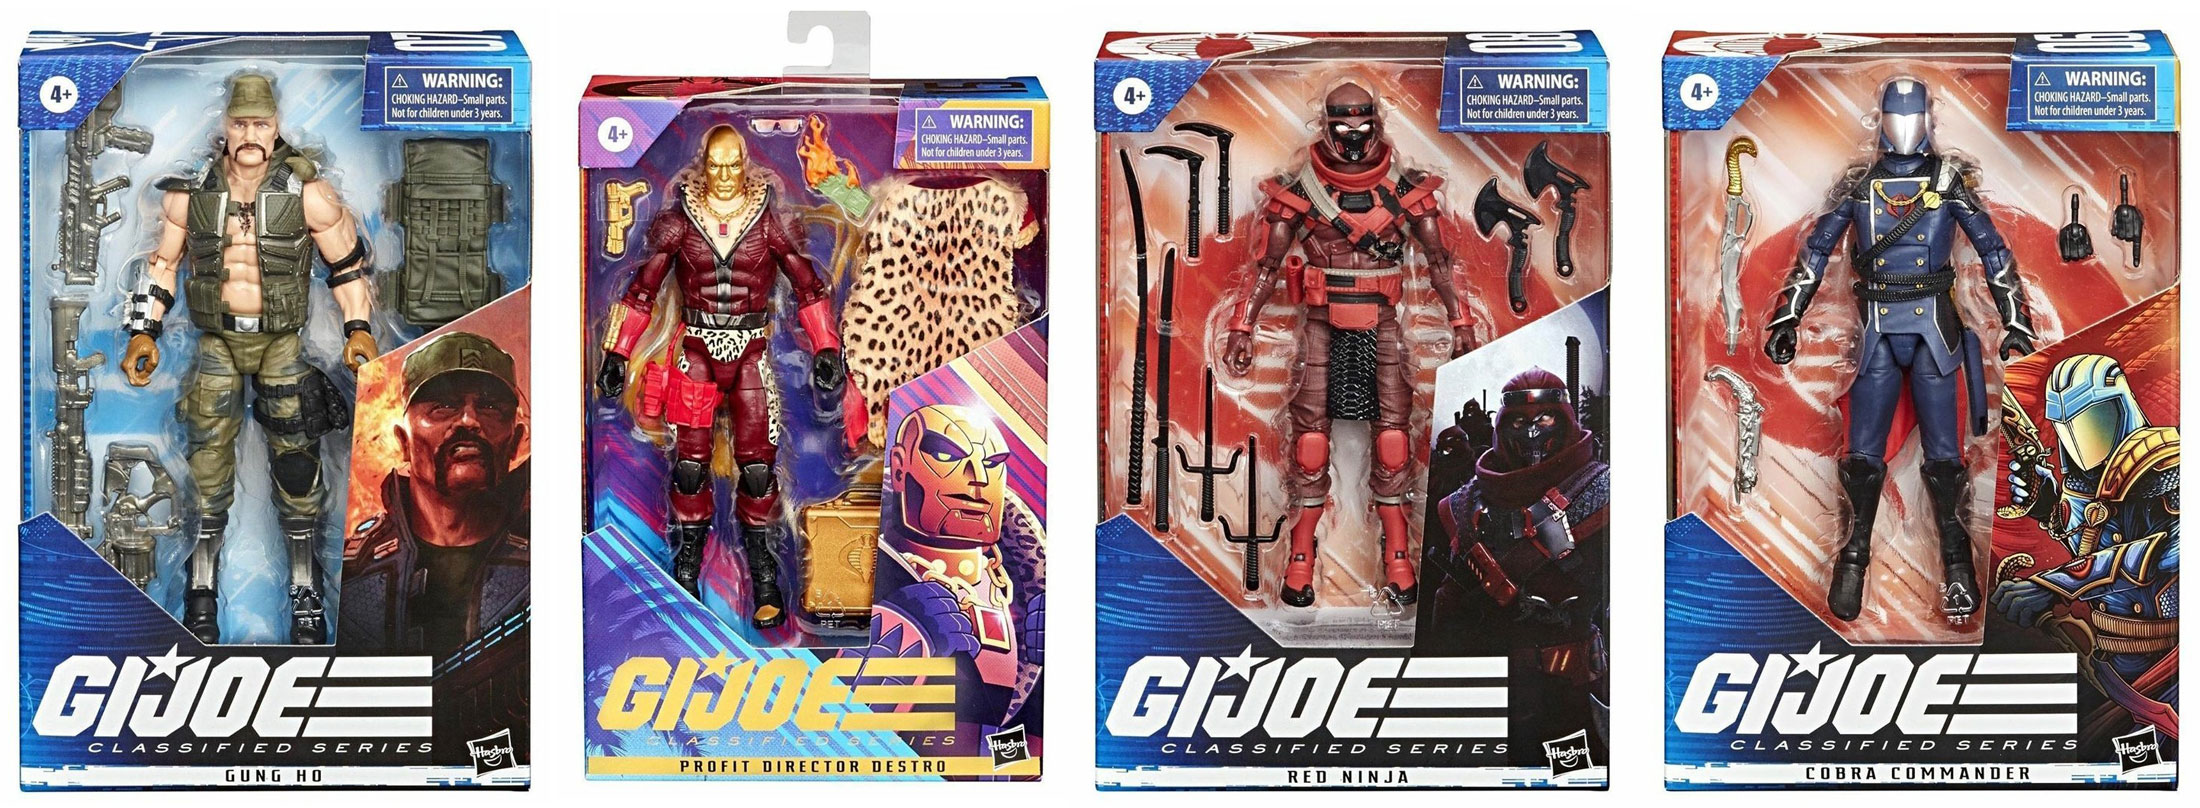 gi-joe-classified-series-figures-leaked-images